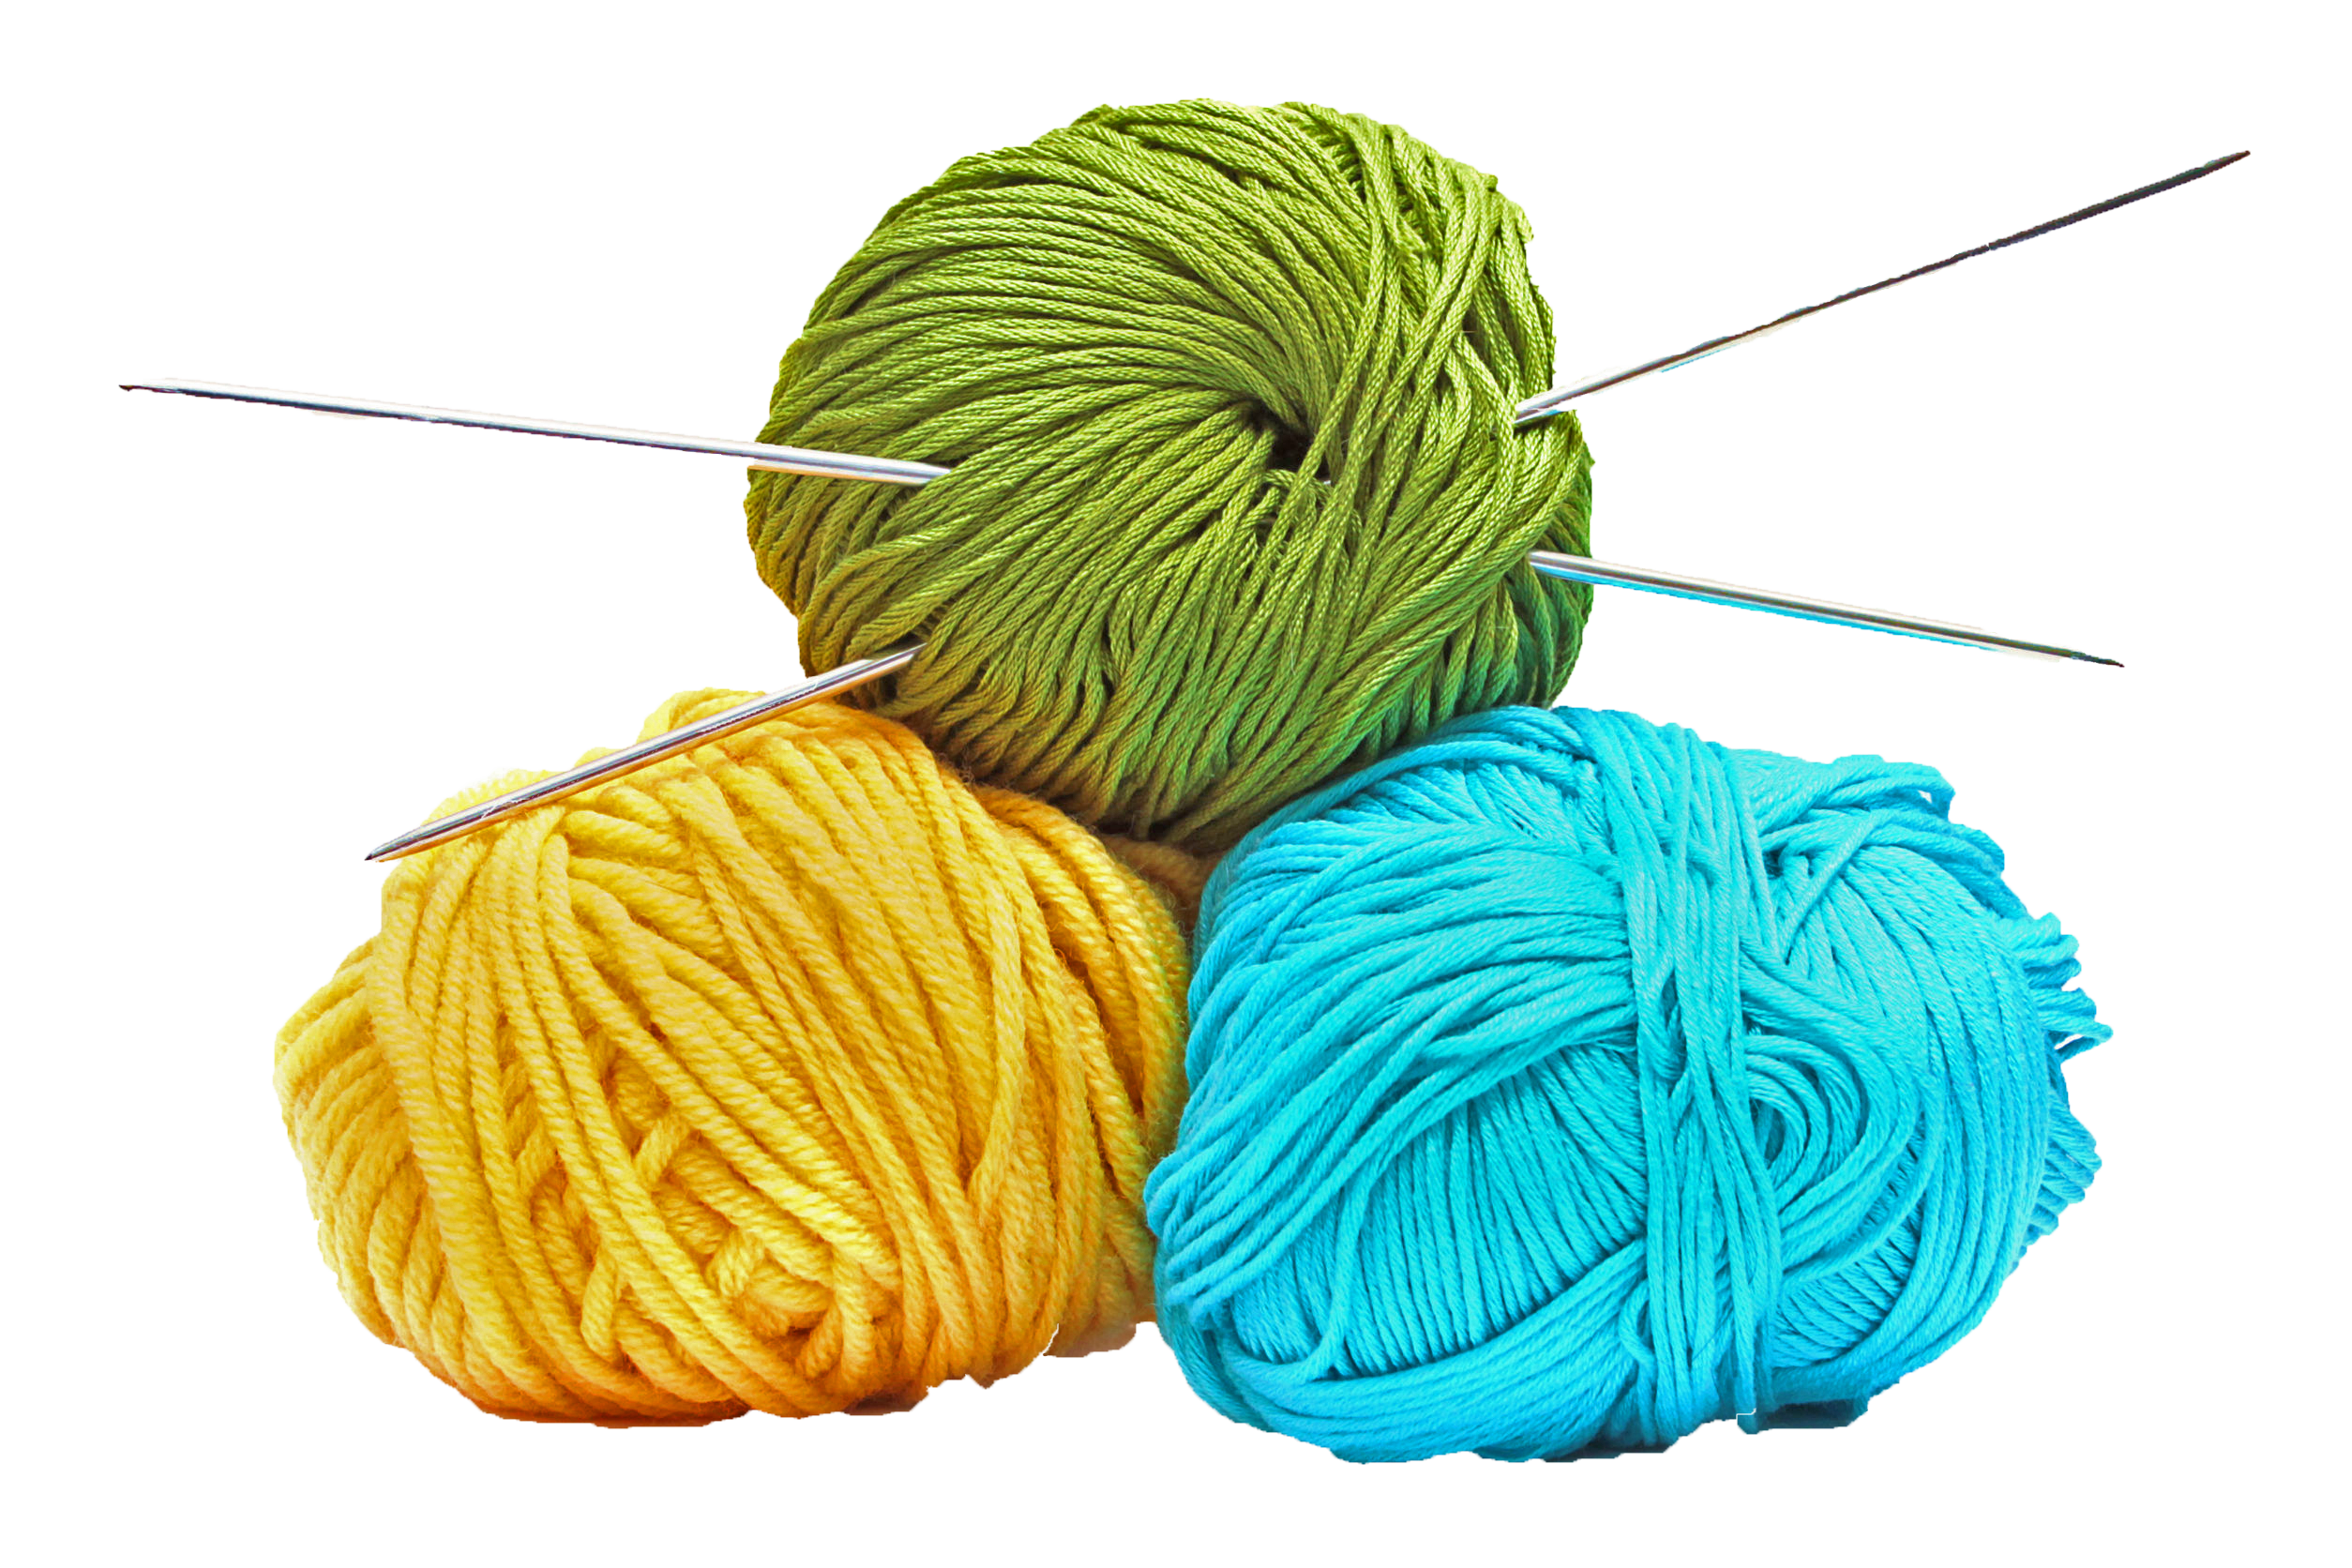 Crafters unite! Join FDLPL for crafting fun during two October events